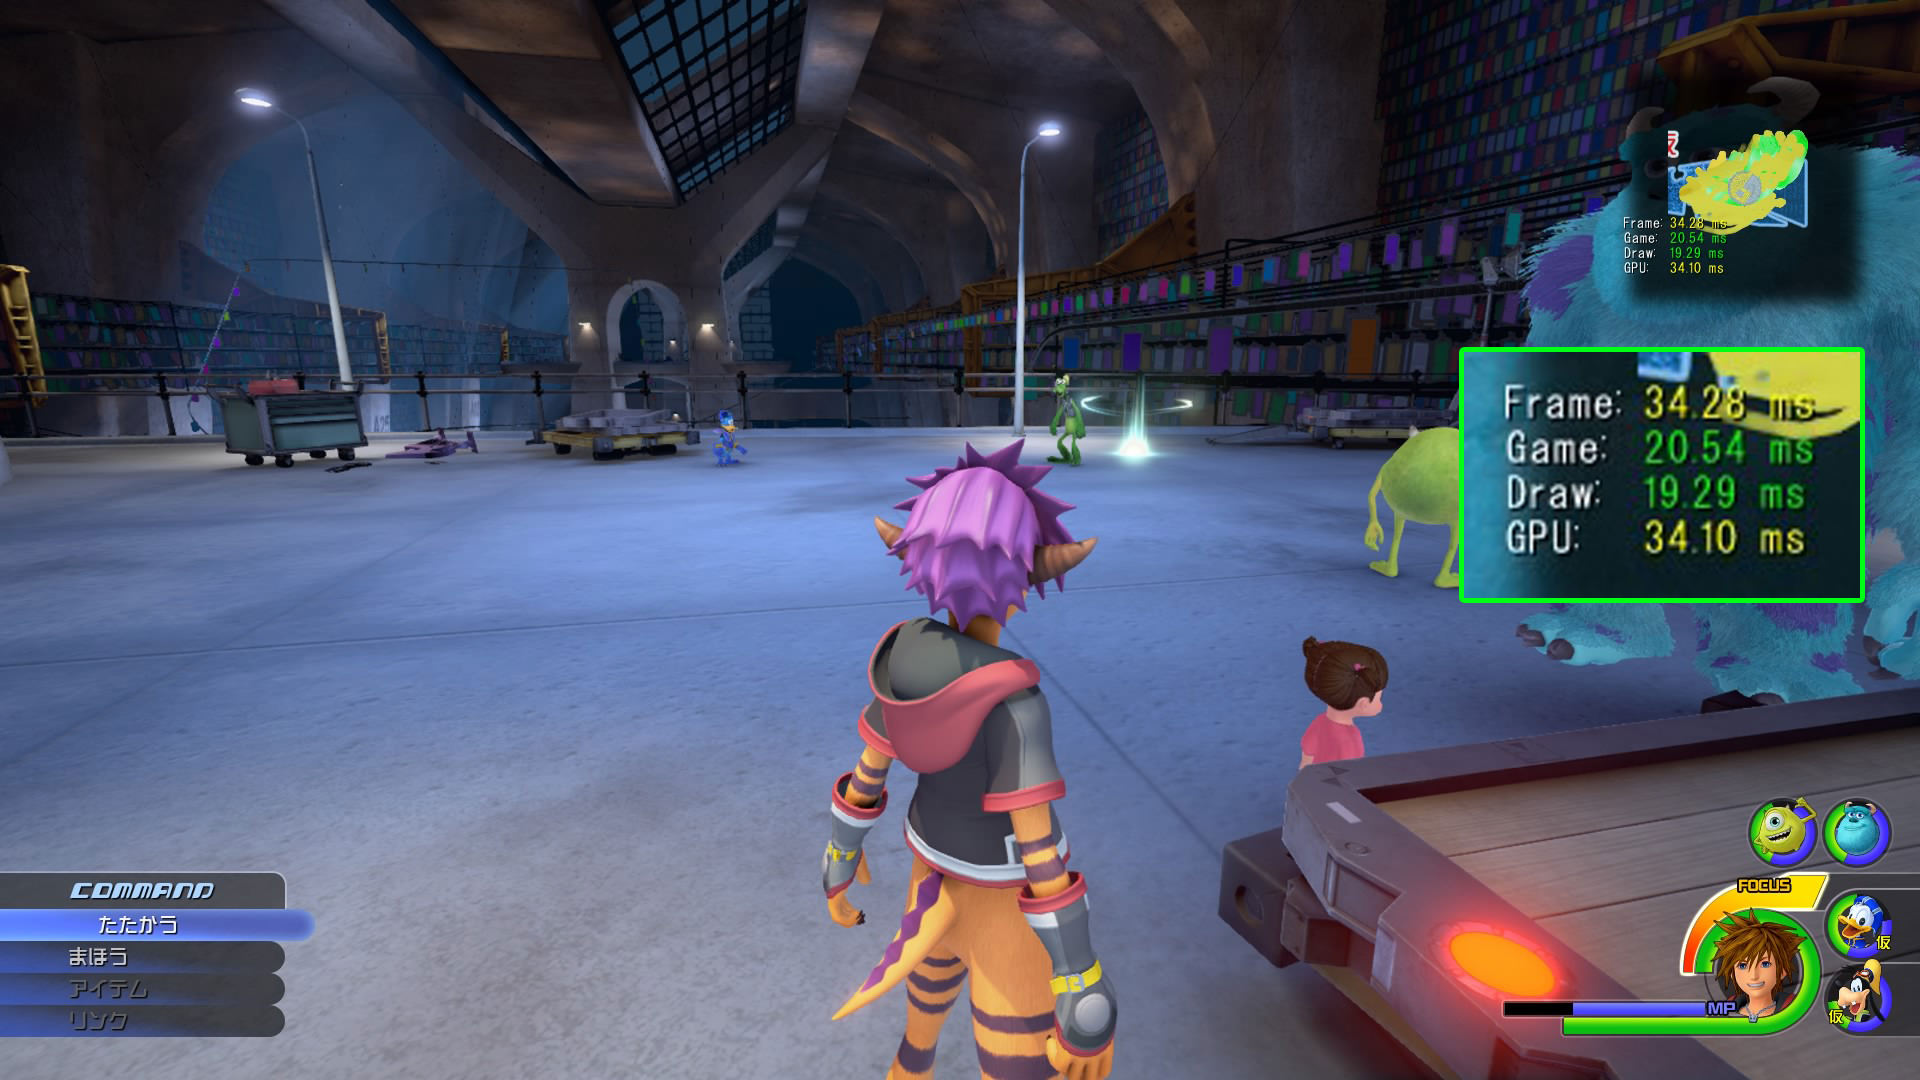 Rumor Leaked Kingdom Hearts Iii Screenshots Reveal Monsters Inc